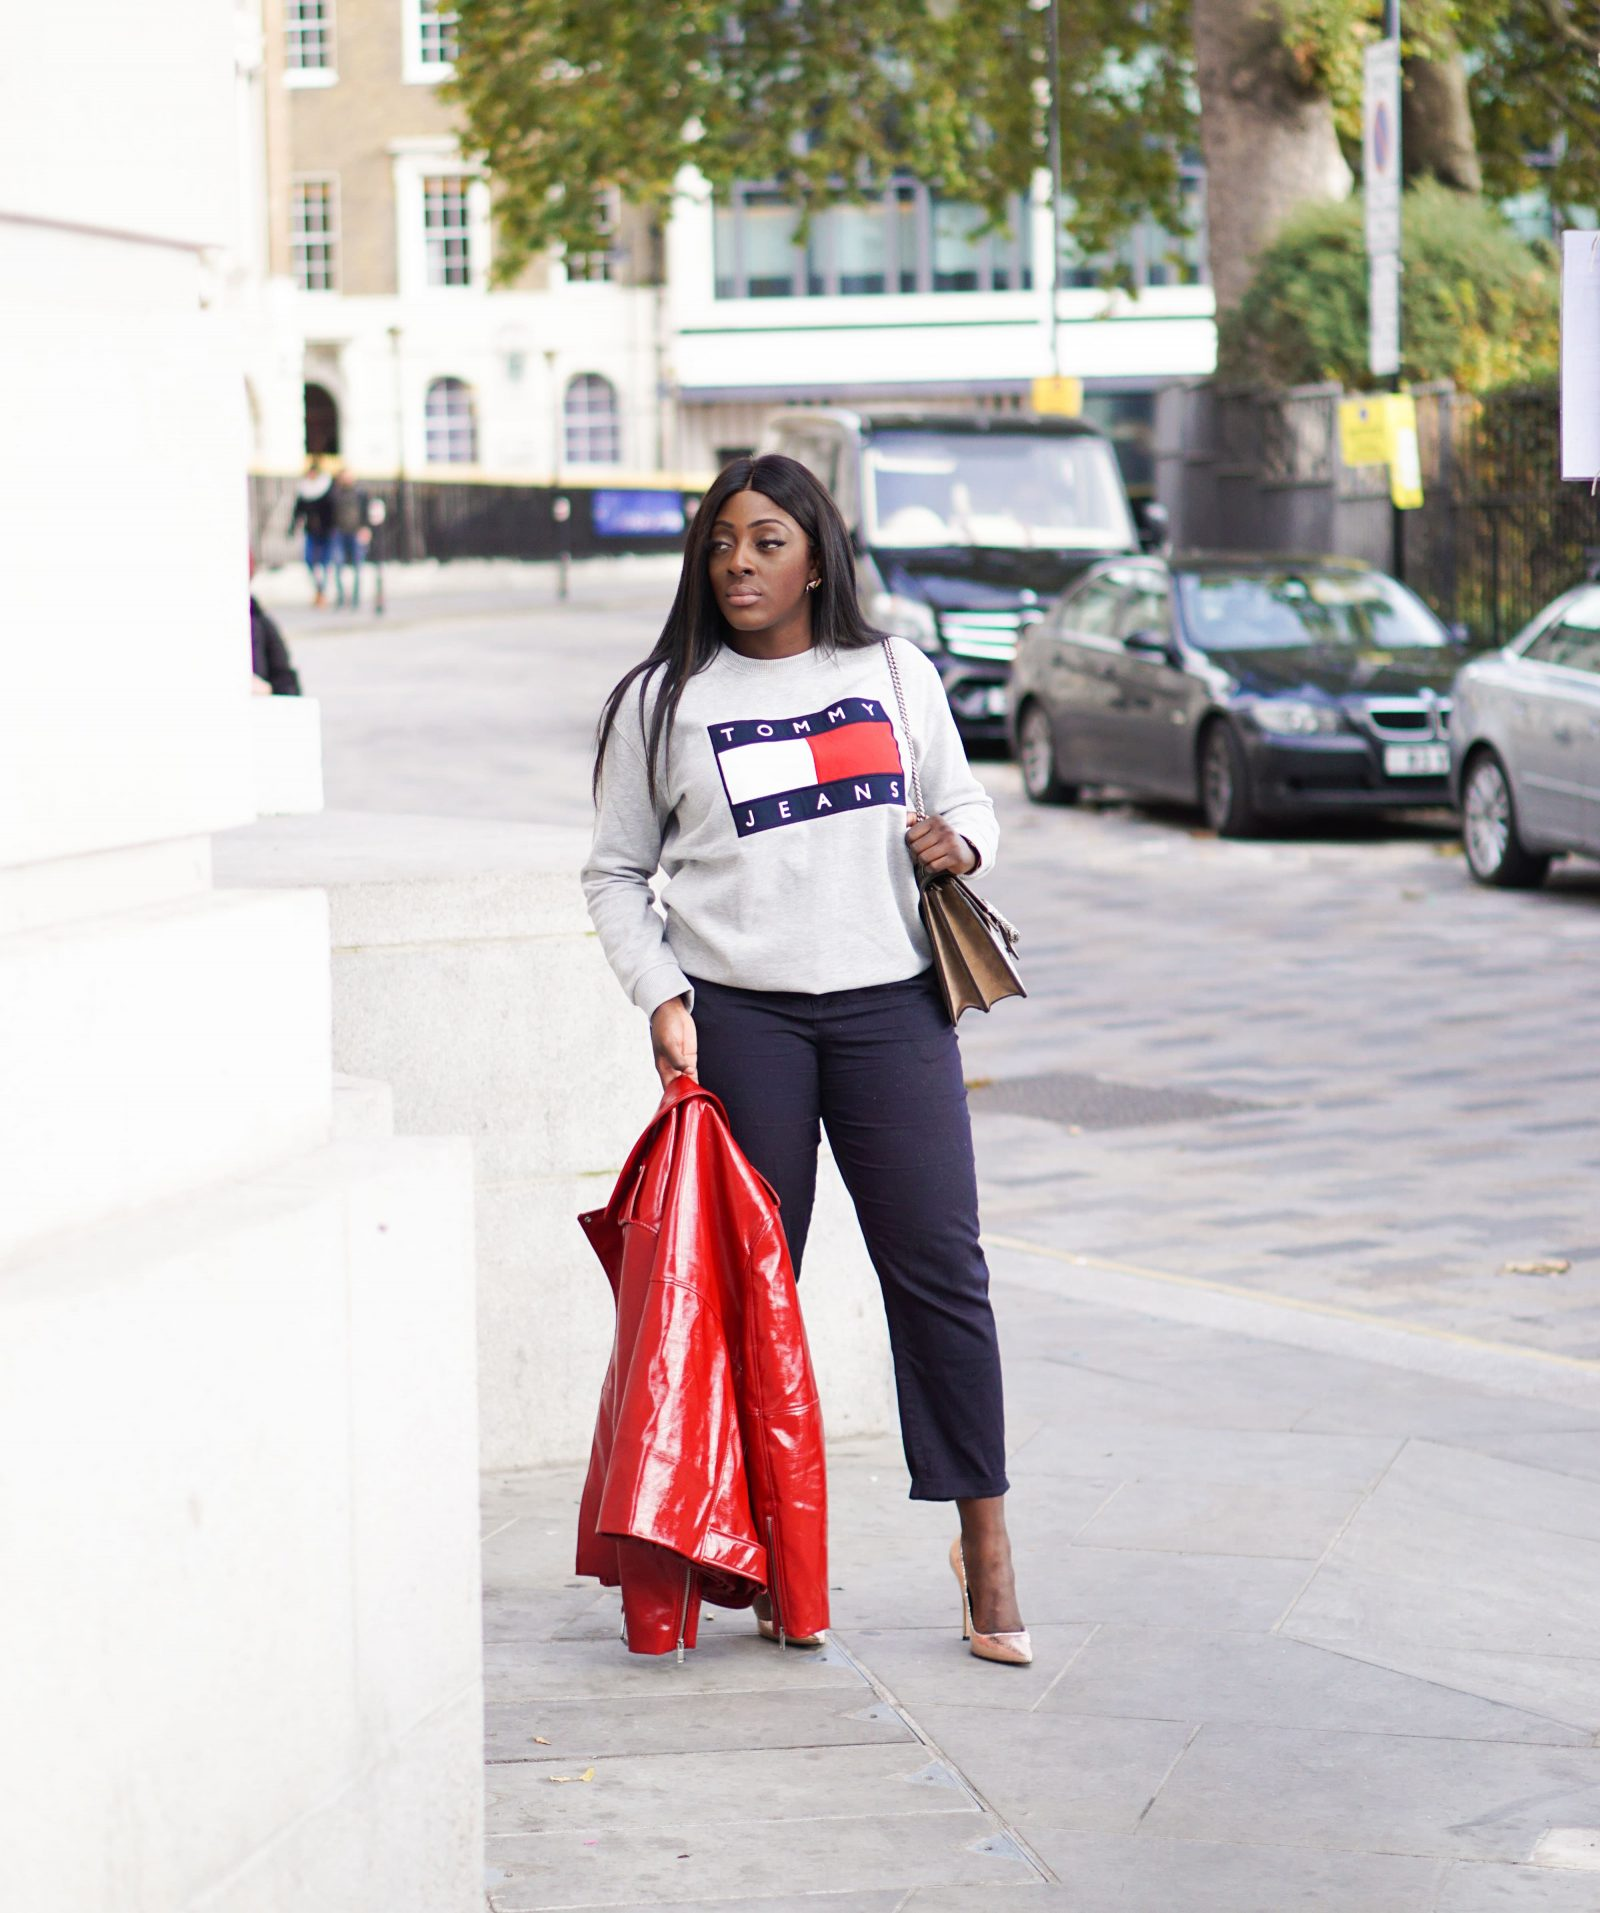 Tommy Jeans & Oversized Logos - Style and the Sass